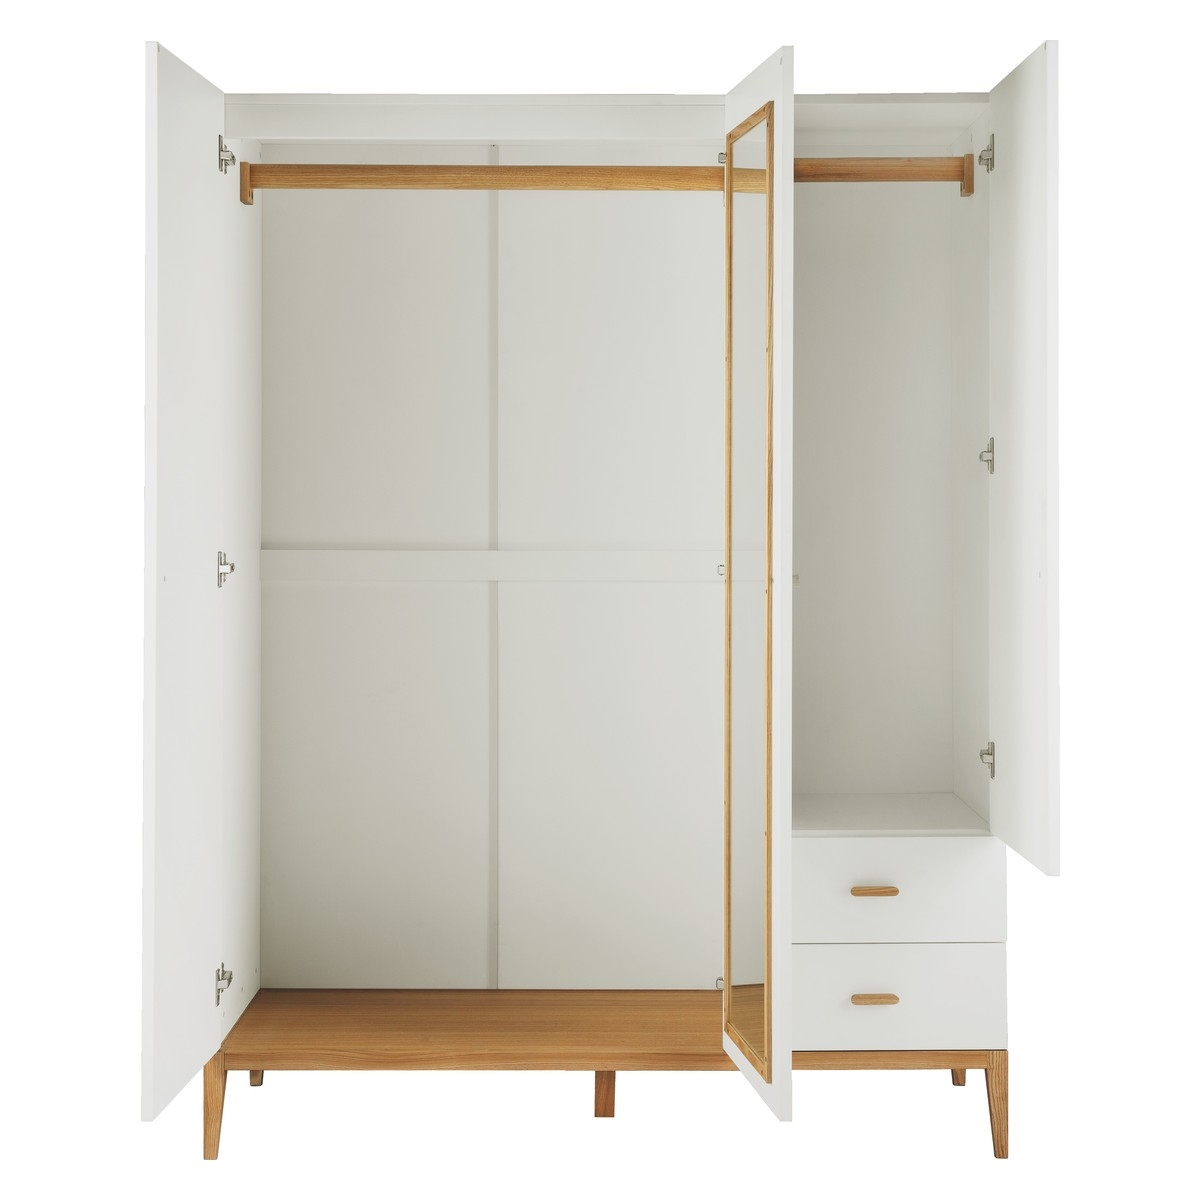 Tatsuma White And Ash 3 Door Wardrobe Buy Now At Habitat Uk With Regard To 3 Door White Wardrobes (Image 22 of 25)